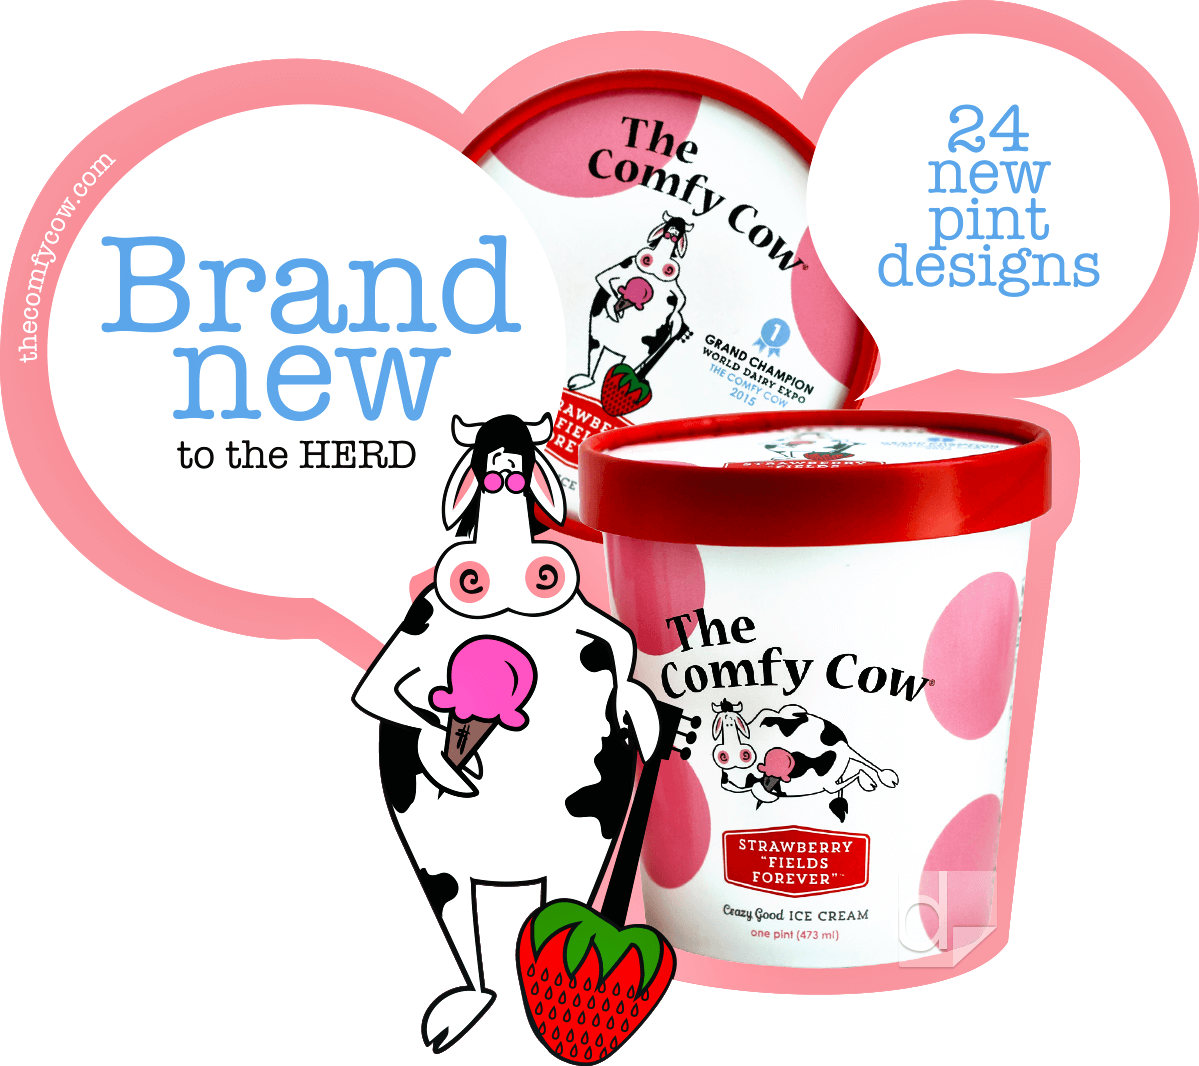 Freezer Cling Vinyl Decal Printed by Dilco for Comfy Cow.